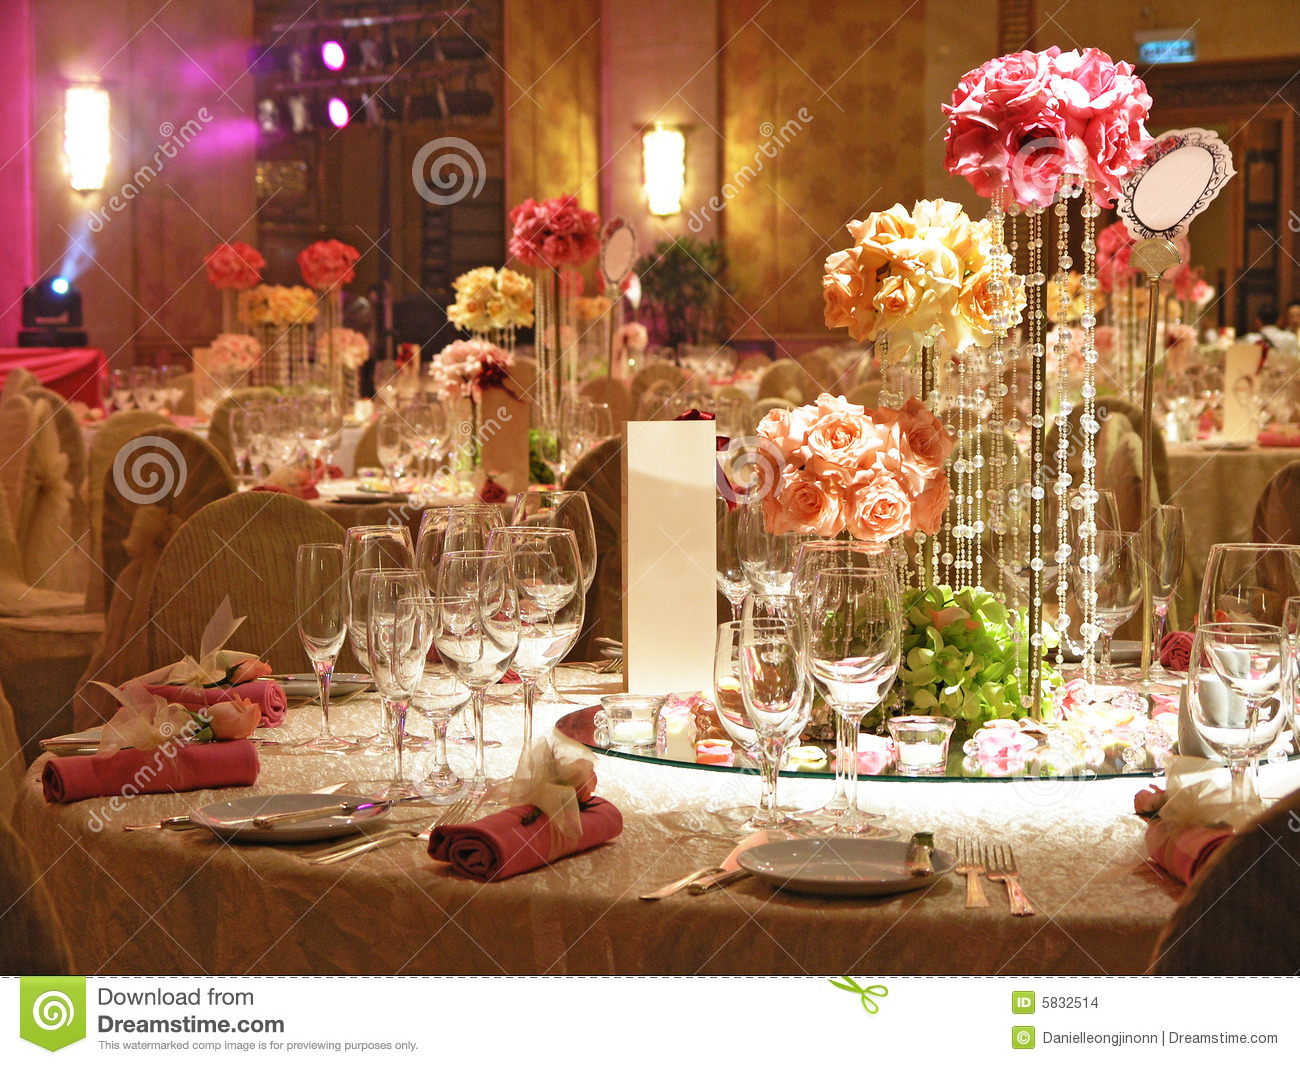 Wedding Table Setting Stock Images - Image: 5832514